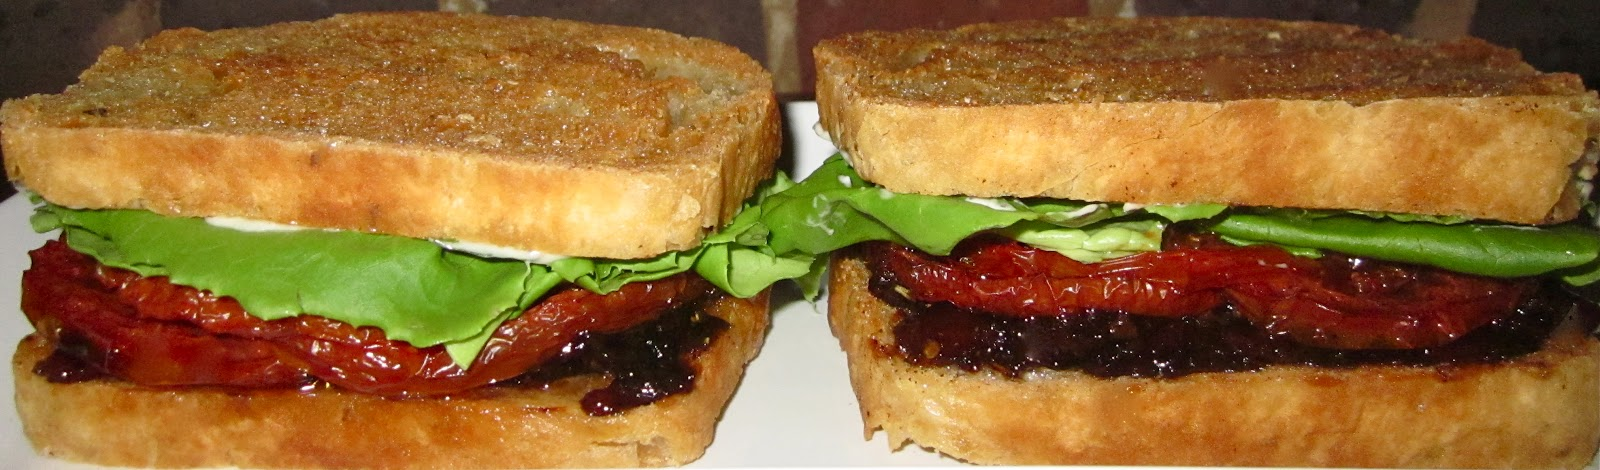 : Bacon Jam BLT's with Slow Roasted Tomatoes, Fried Homemade Roasted ...